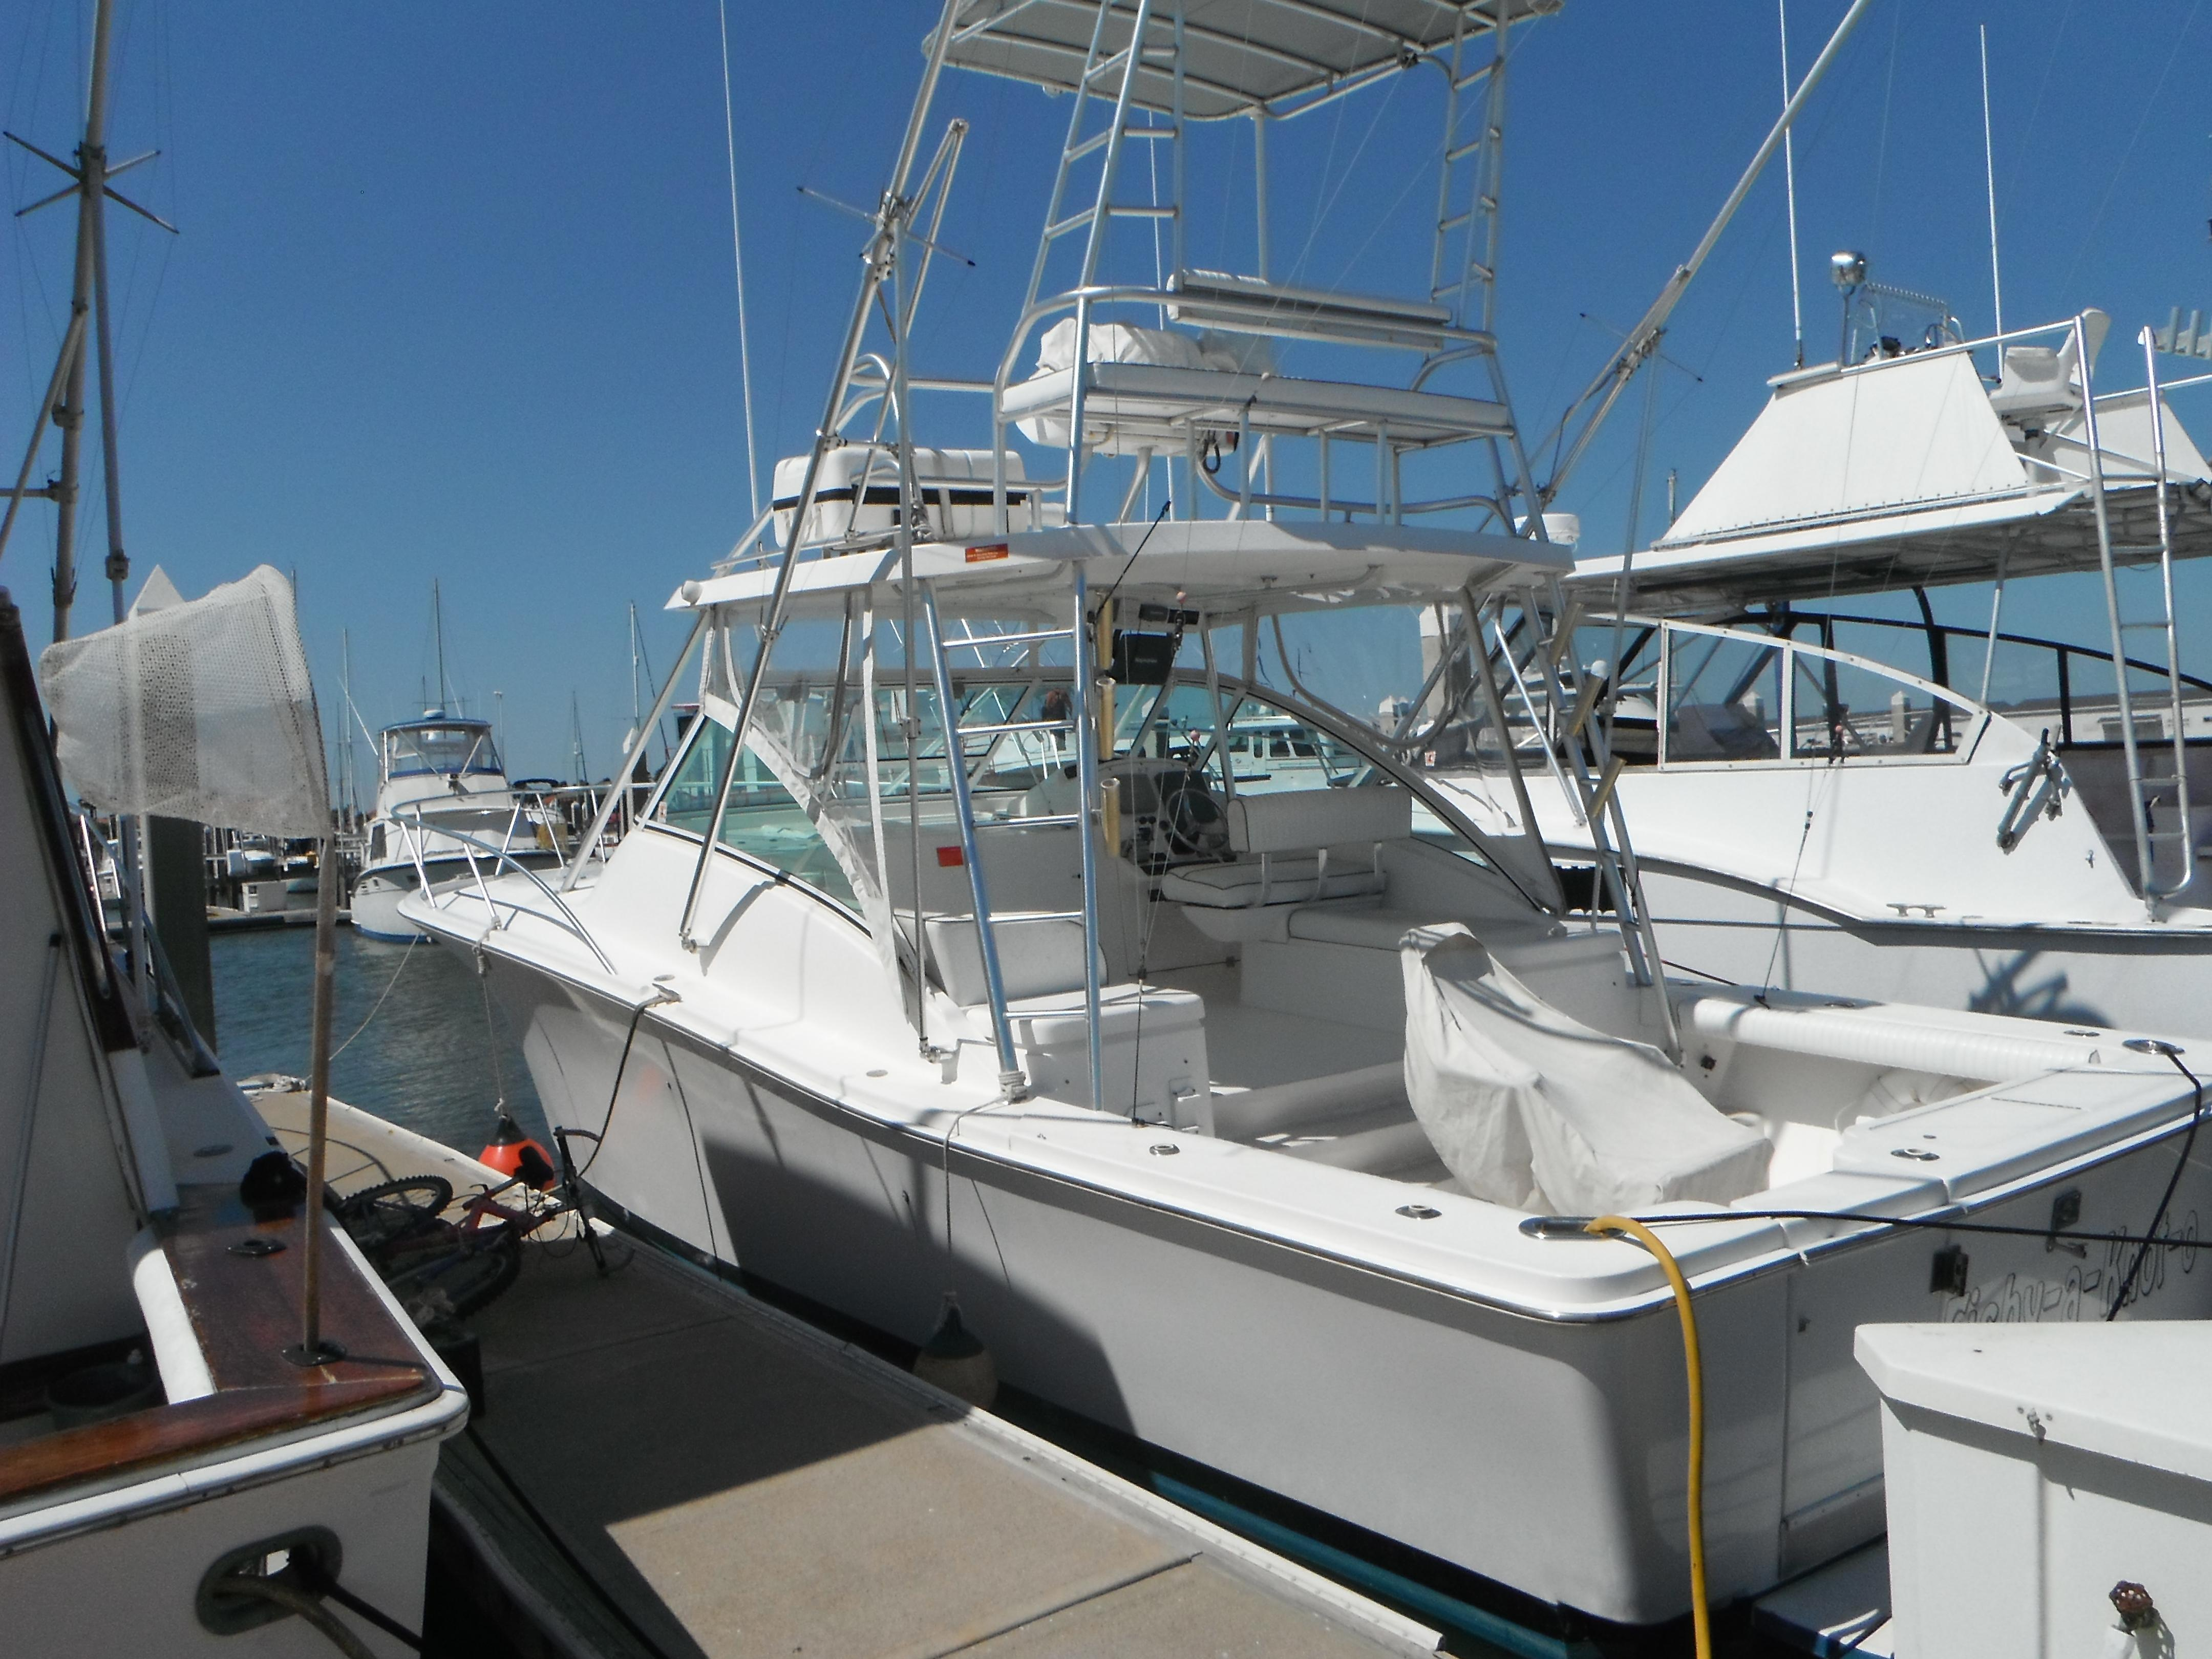 Marlin (TX) United States  city images : 2003 Luhrs 36SX Open Power Boat For Sale www.yachtworld.com